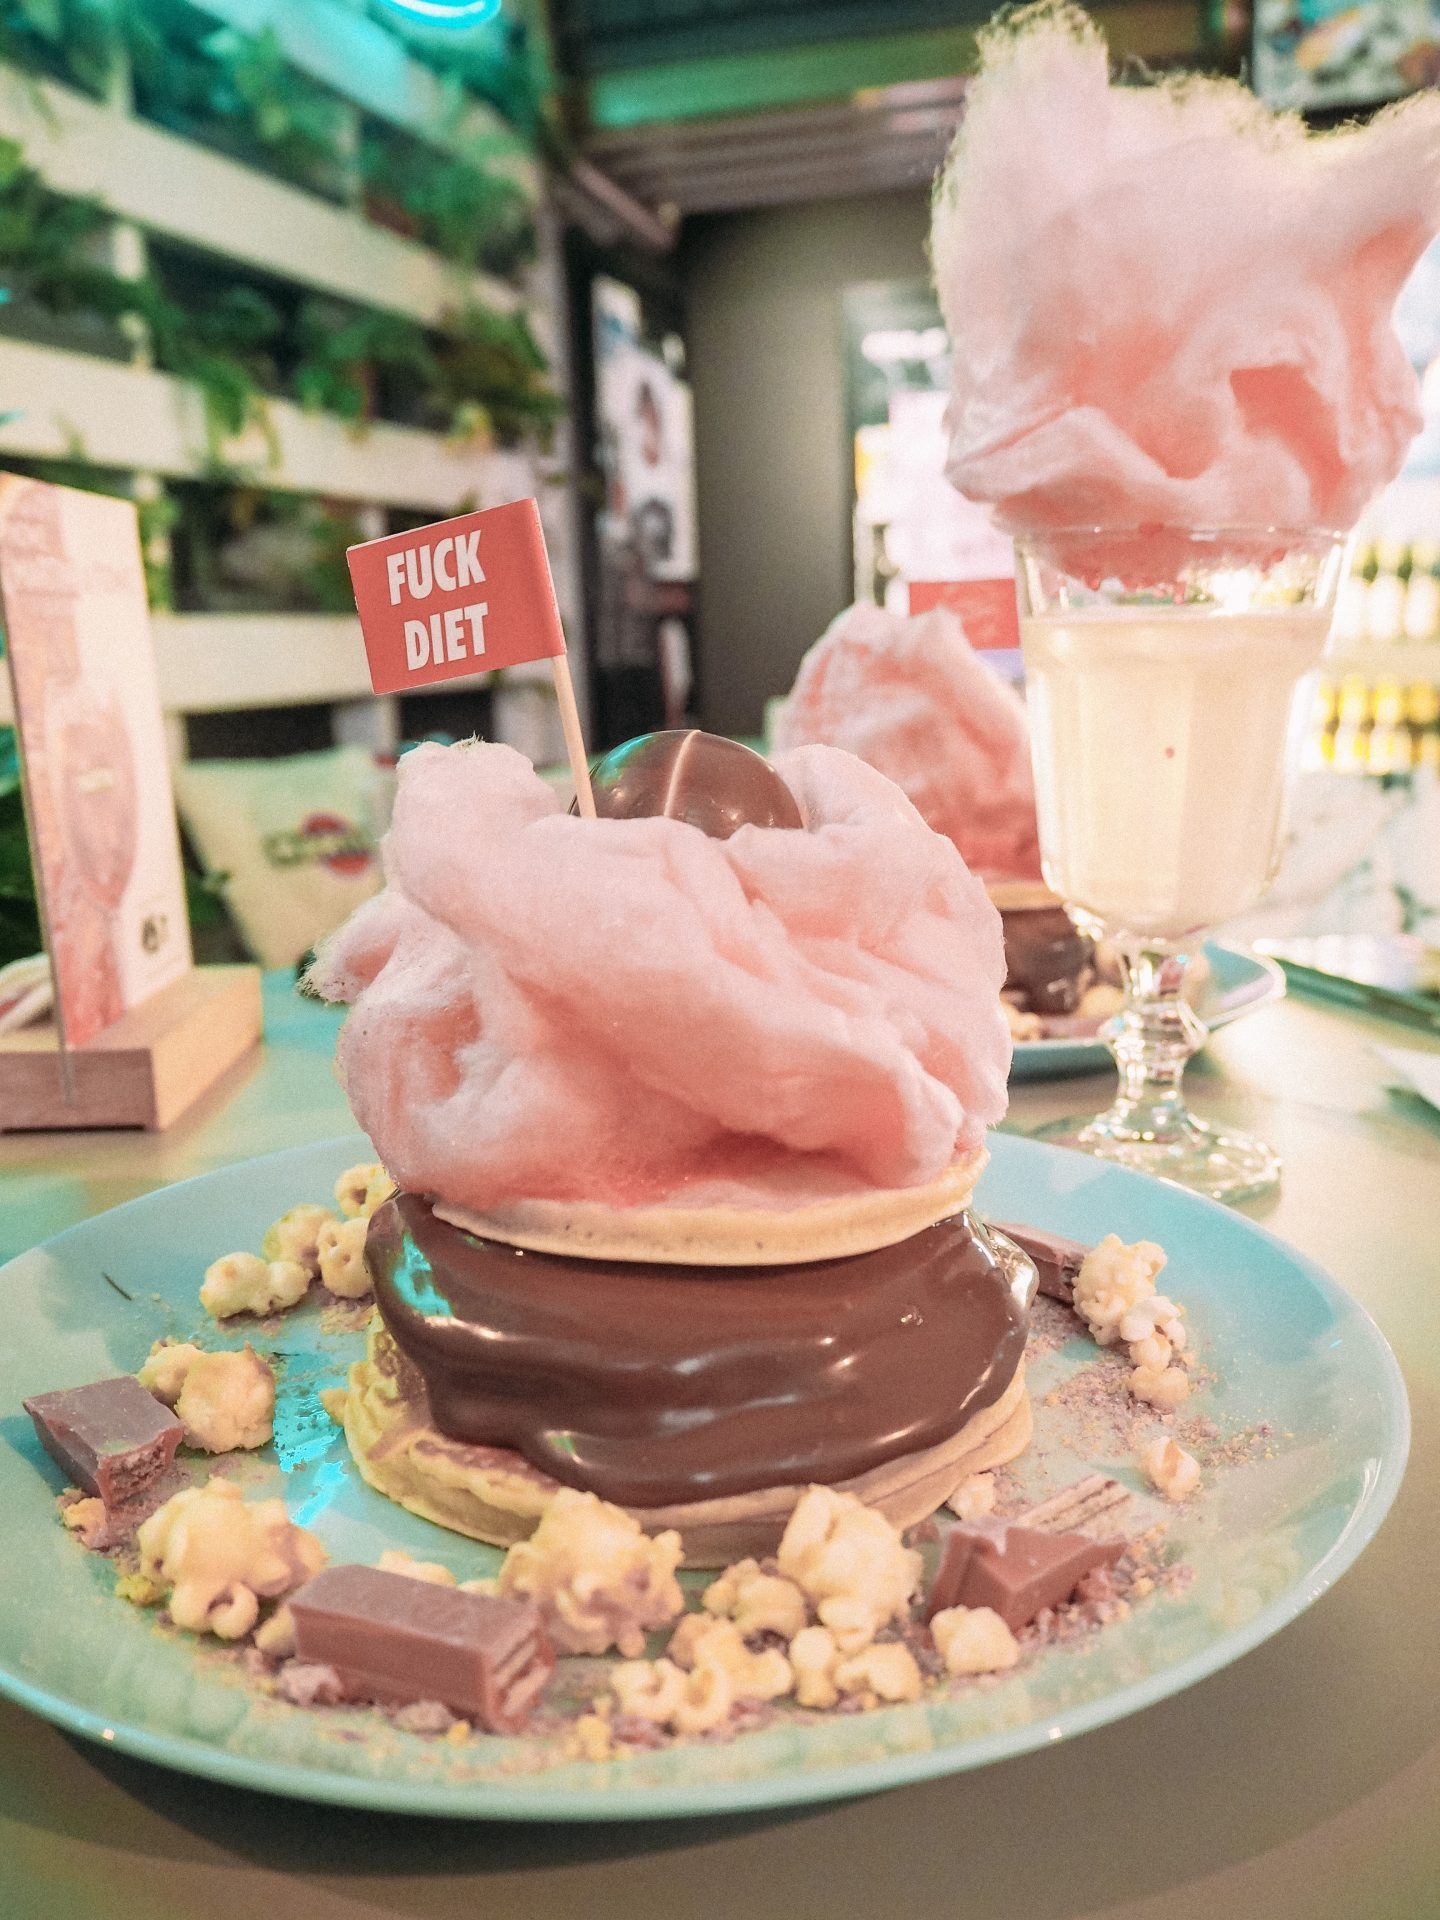 Mr Pancake Nutella Pancakes with Candyfloss